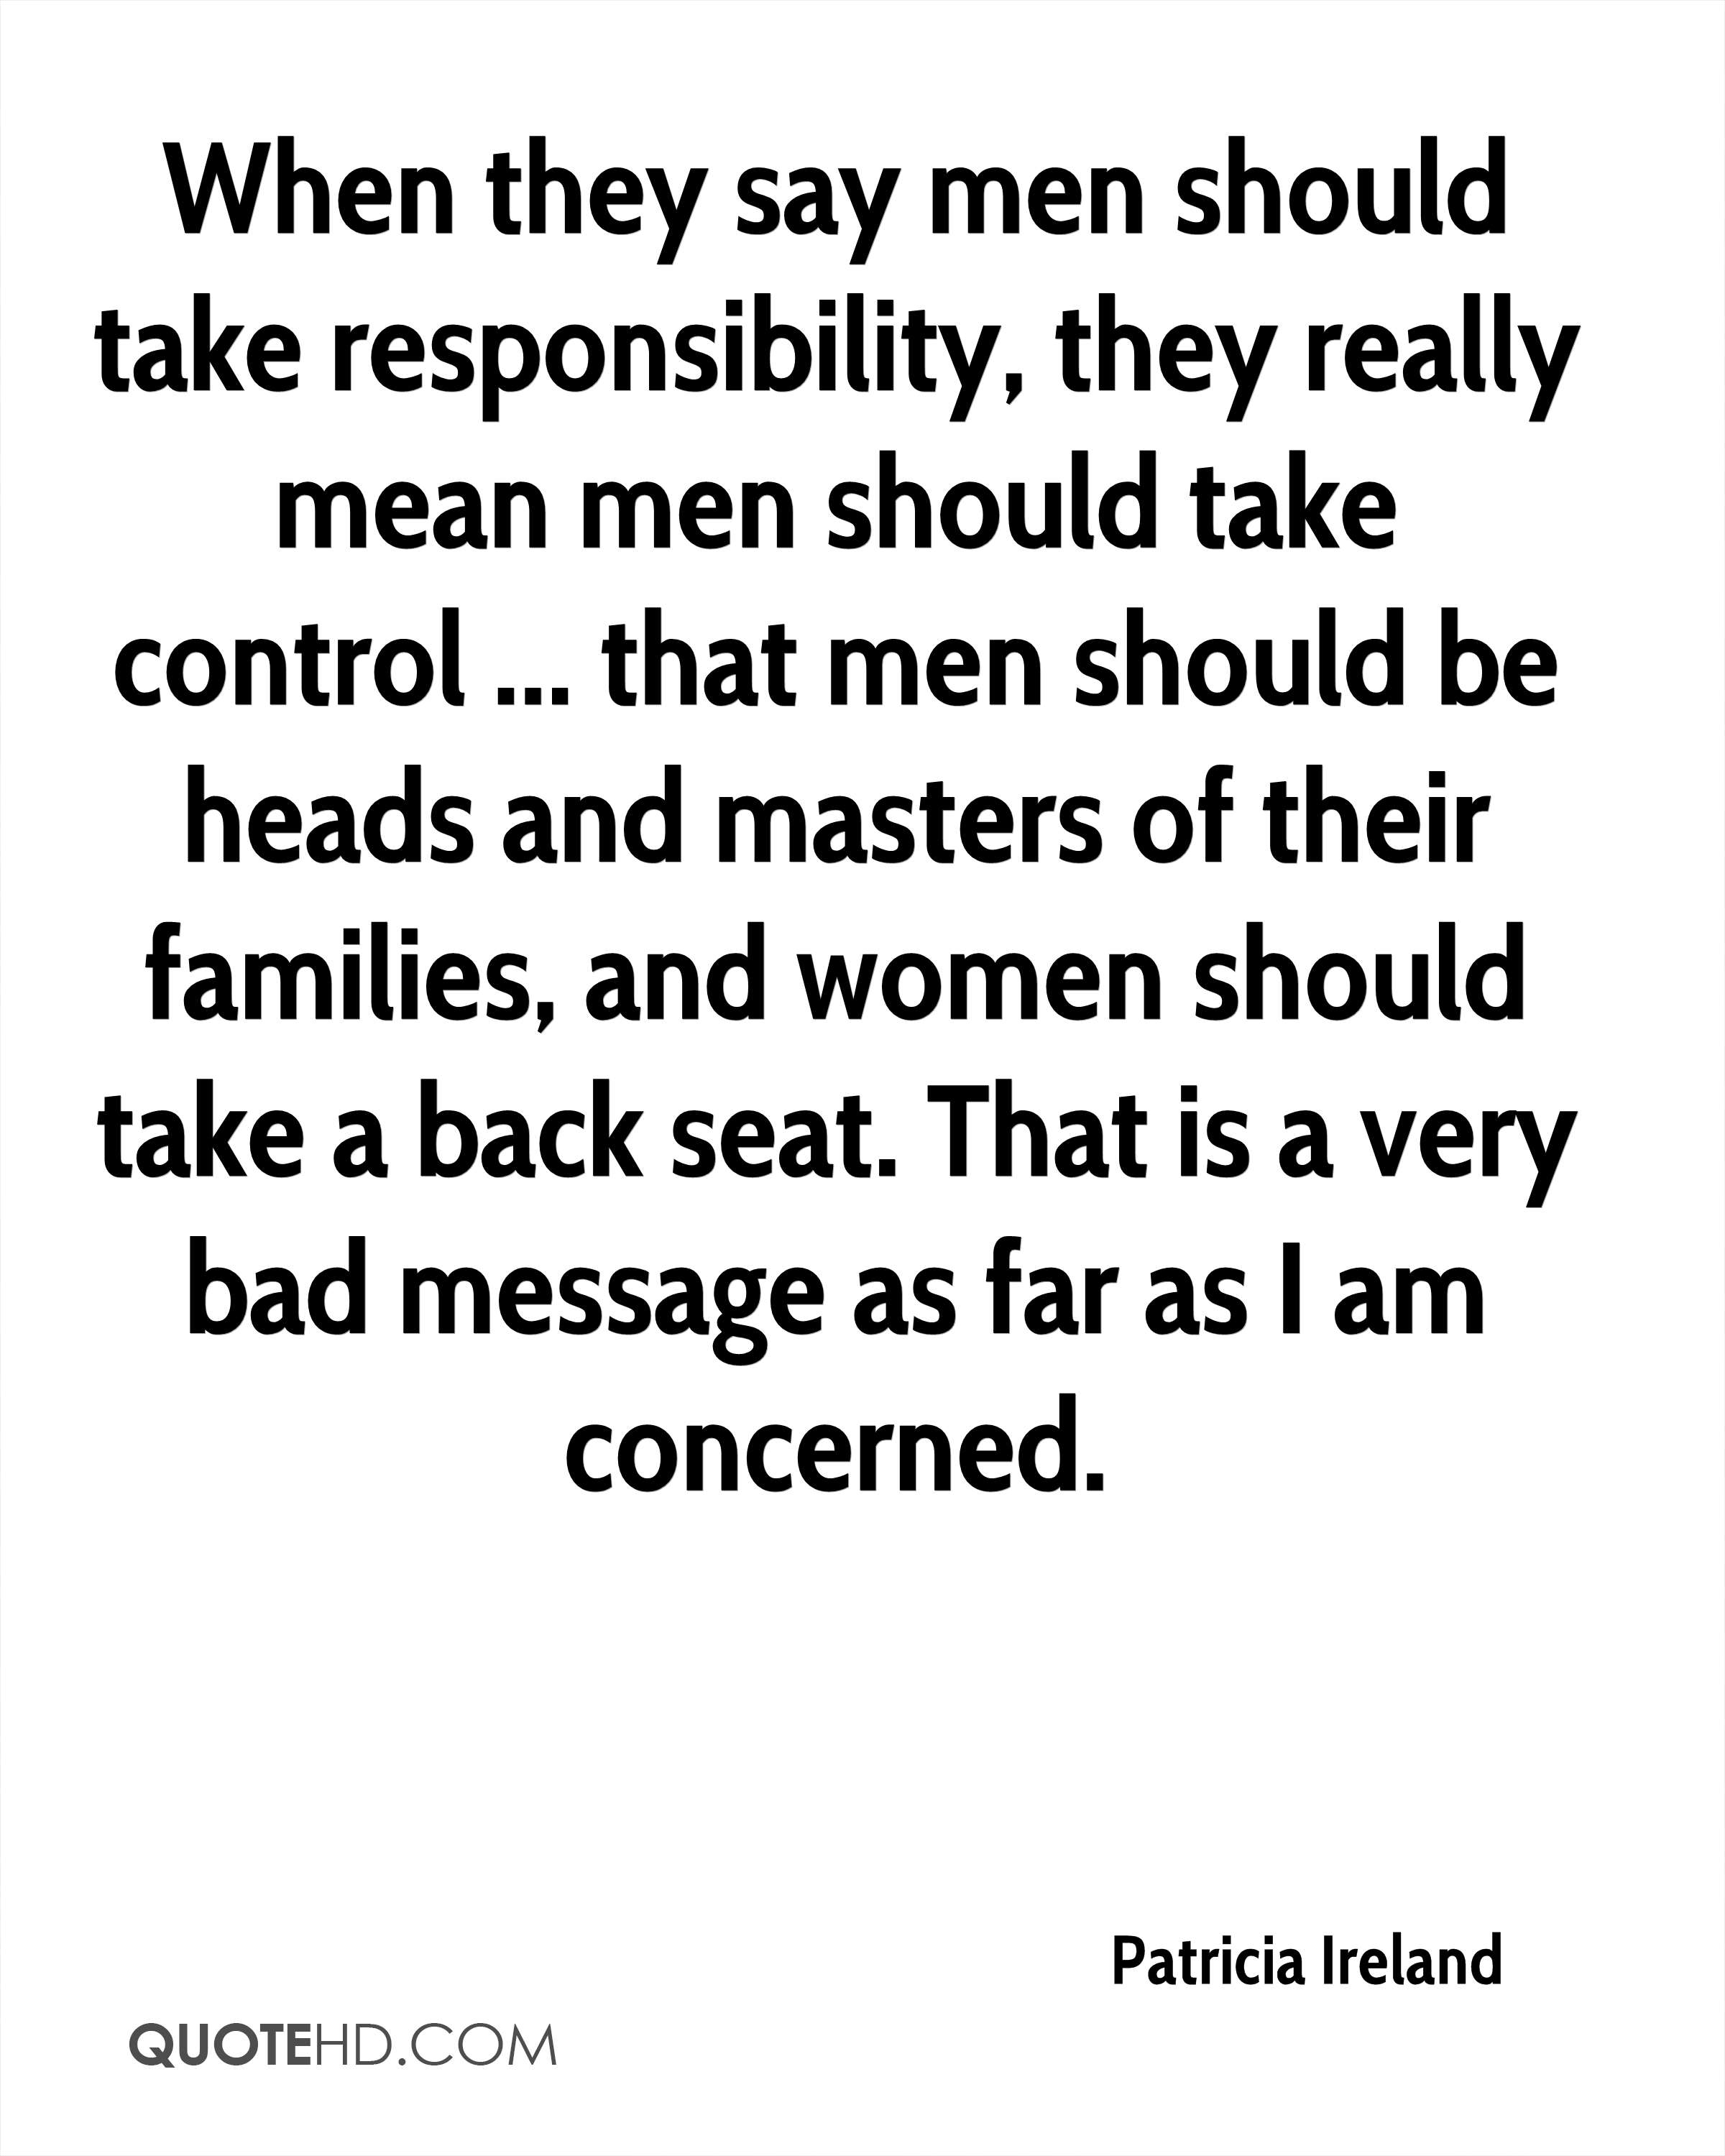 When they say men should take responsibility, they really mean men should take control ... that men should be heads and masters of their families, and women should take a back seat. That is a very bad message as far as I am concerned.